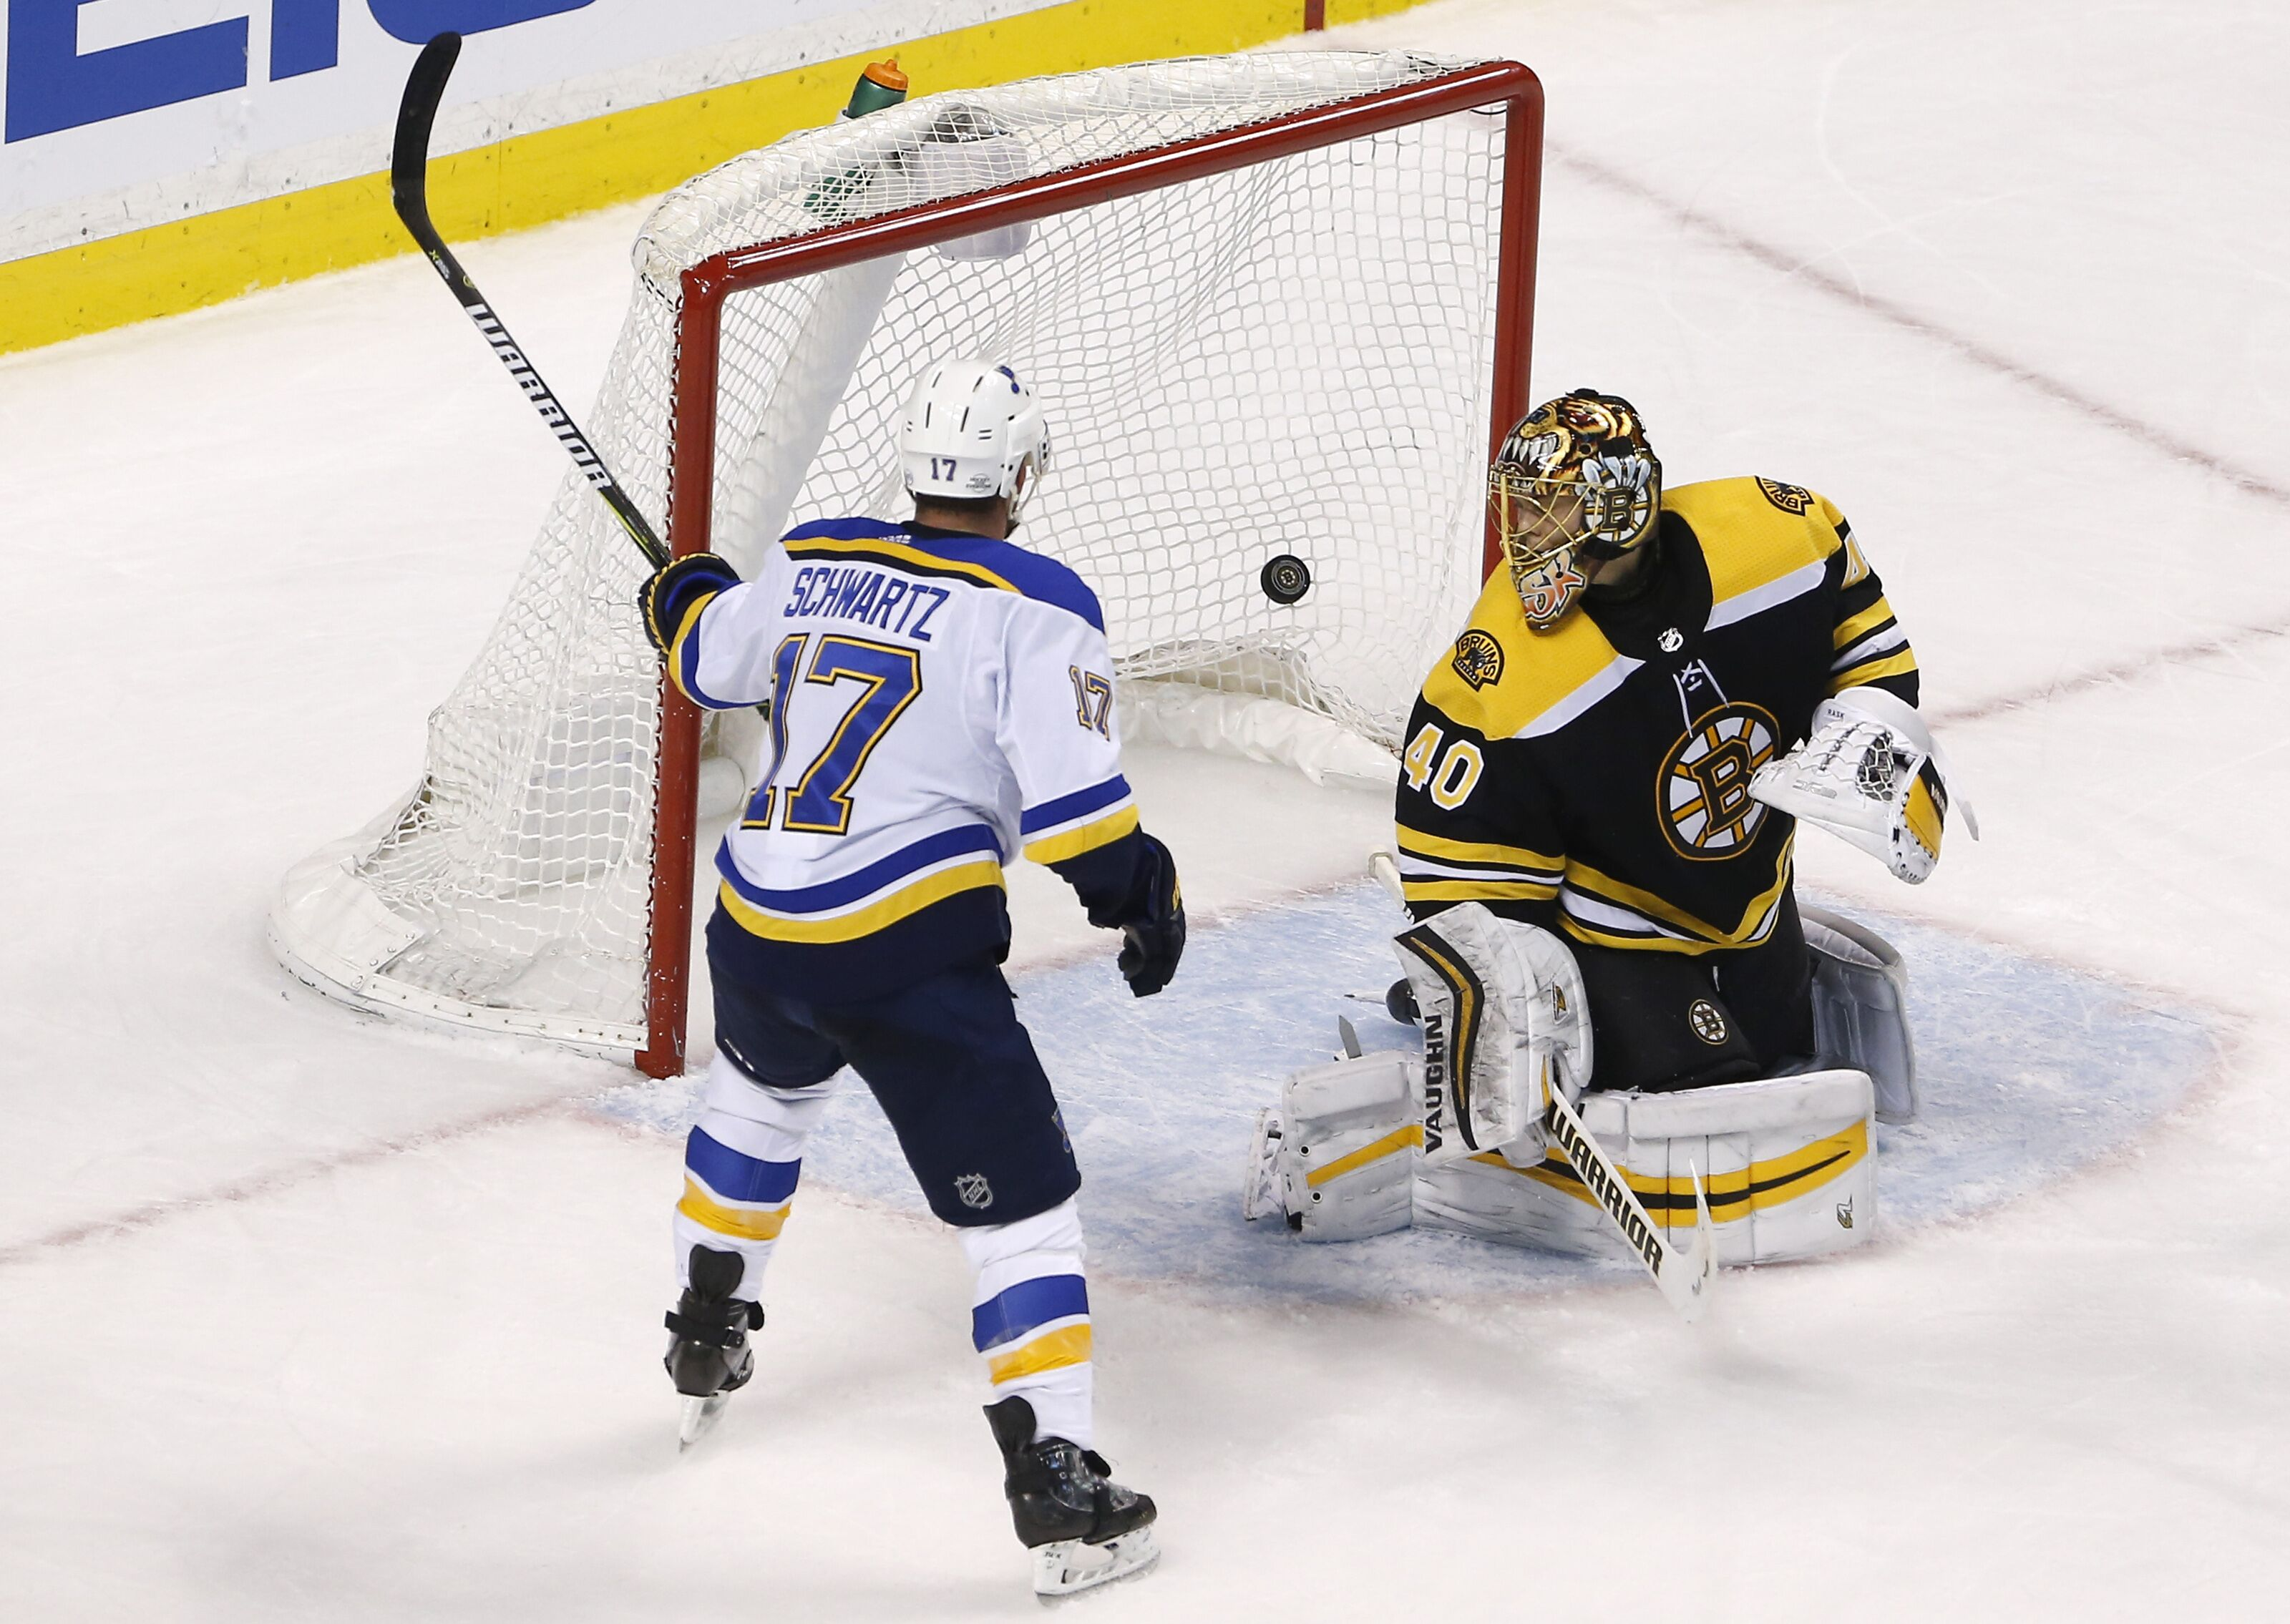 913401116-st-louis-blues-vs-boston-bruins-at-td-garden.jpg